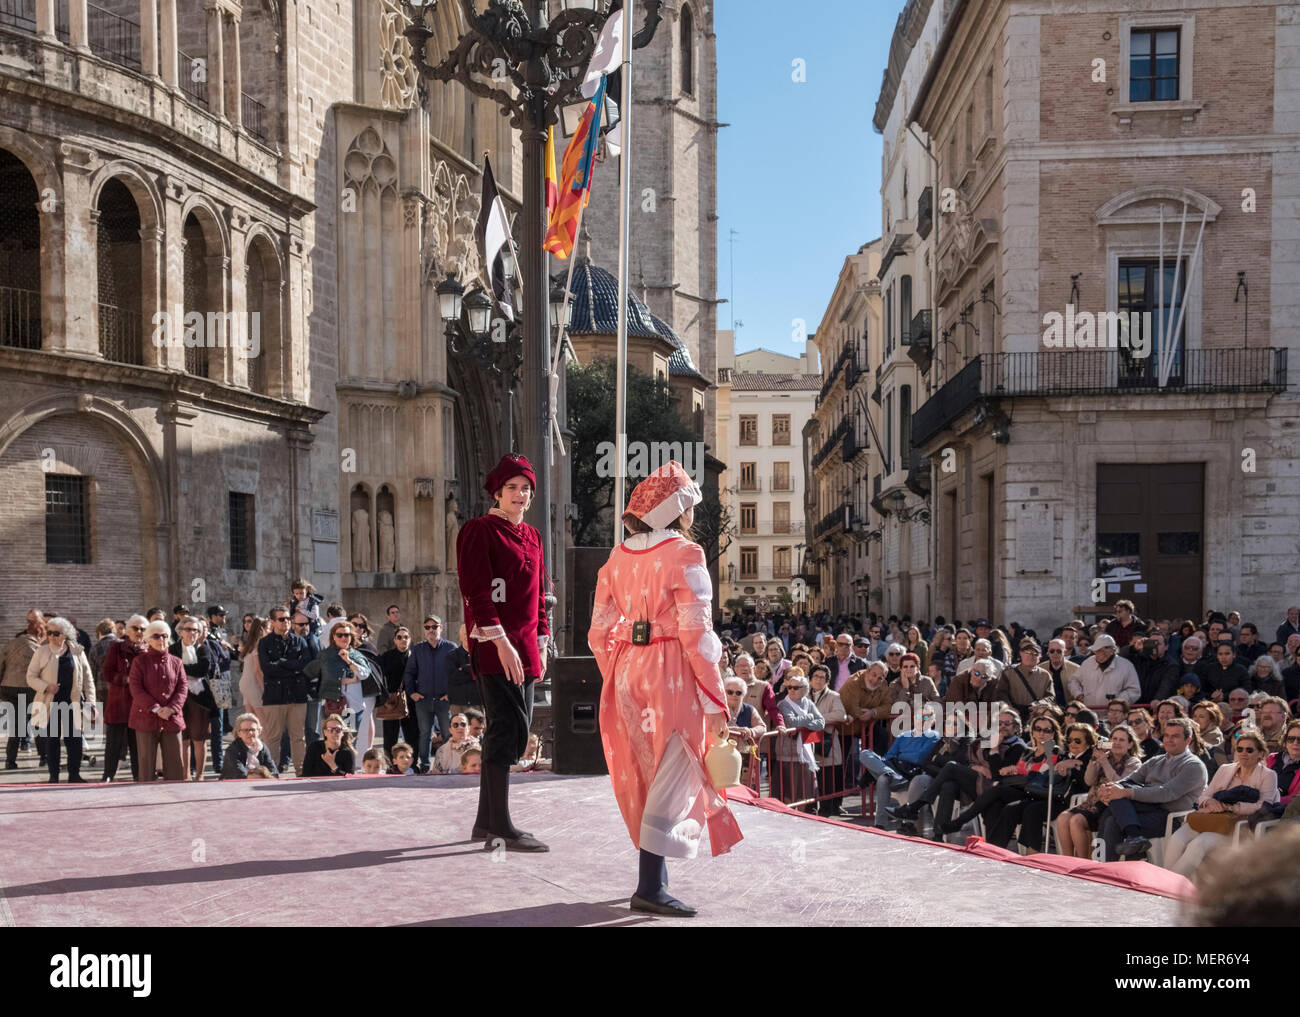 People watching a theatrical performance in Plaza de la Virgen, North Ciutat Vella district, the old town part of Valencia, Spain. Stock Photo